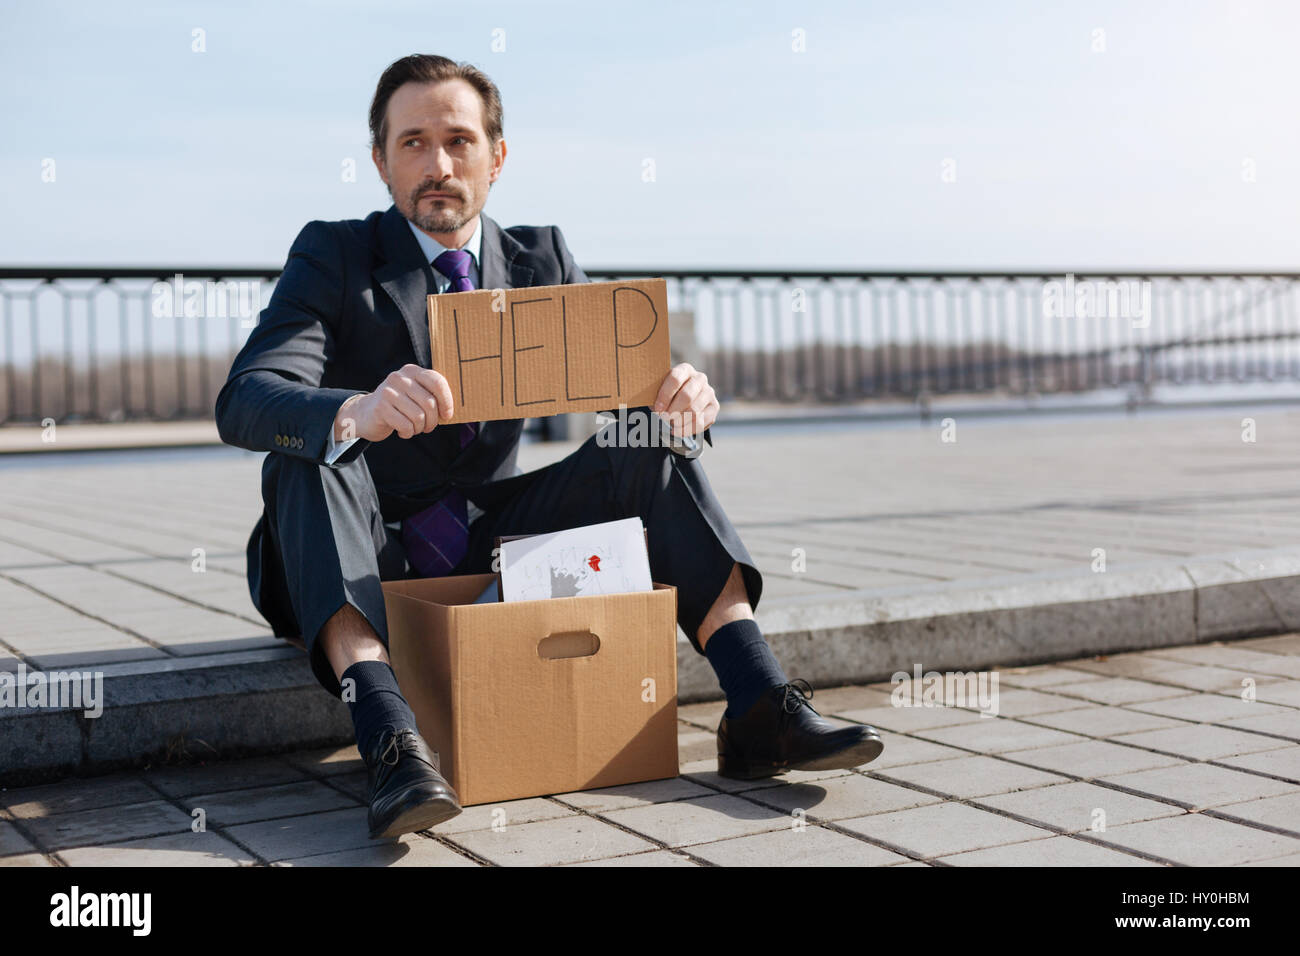 Jobless male person asking for help - Stock Image